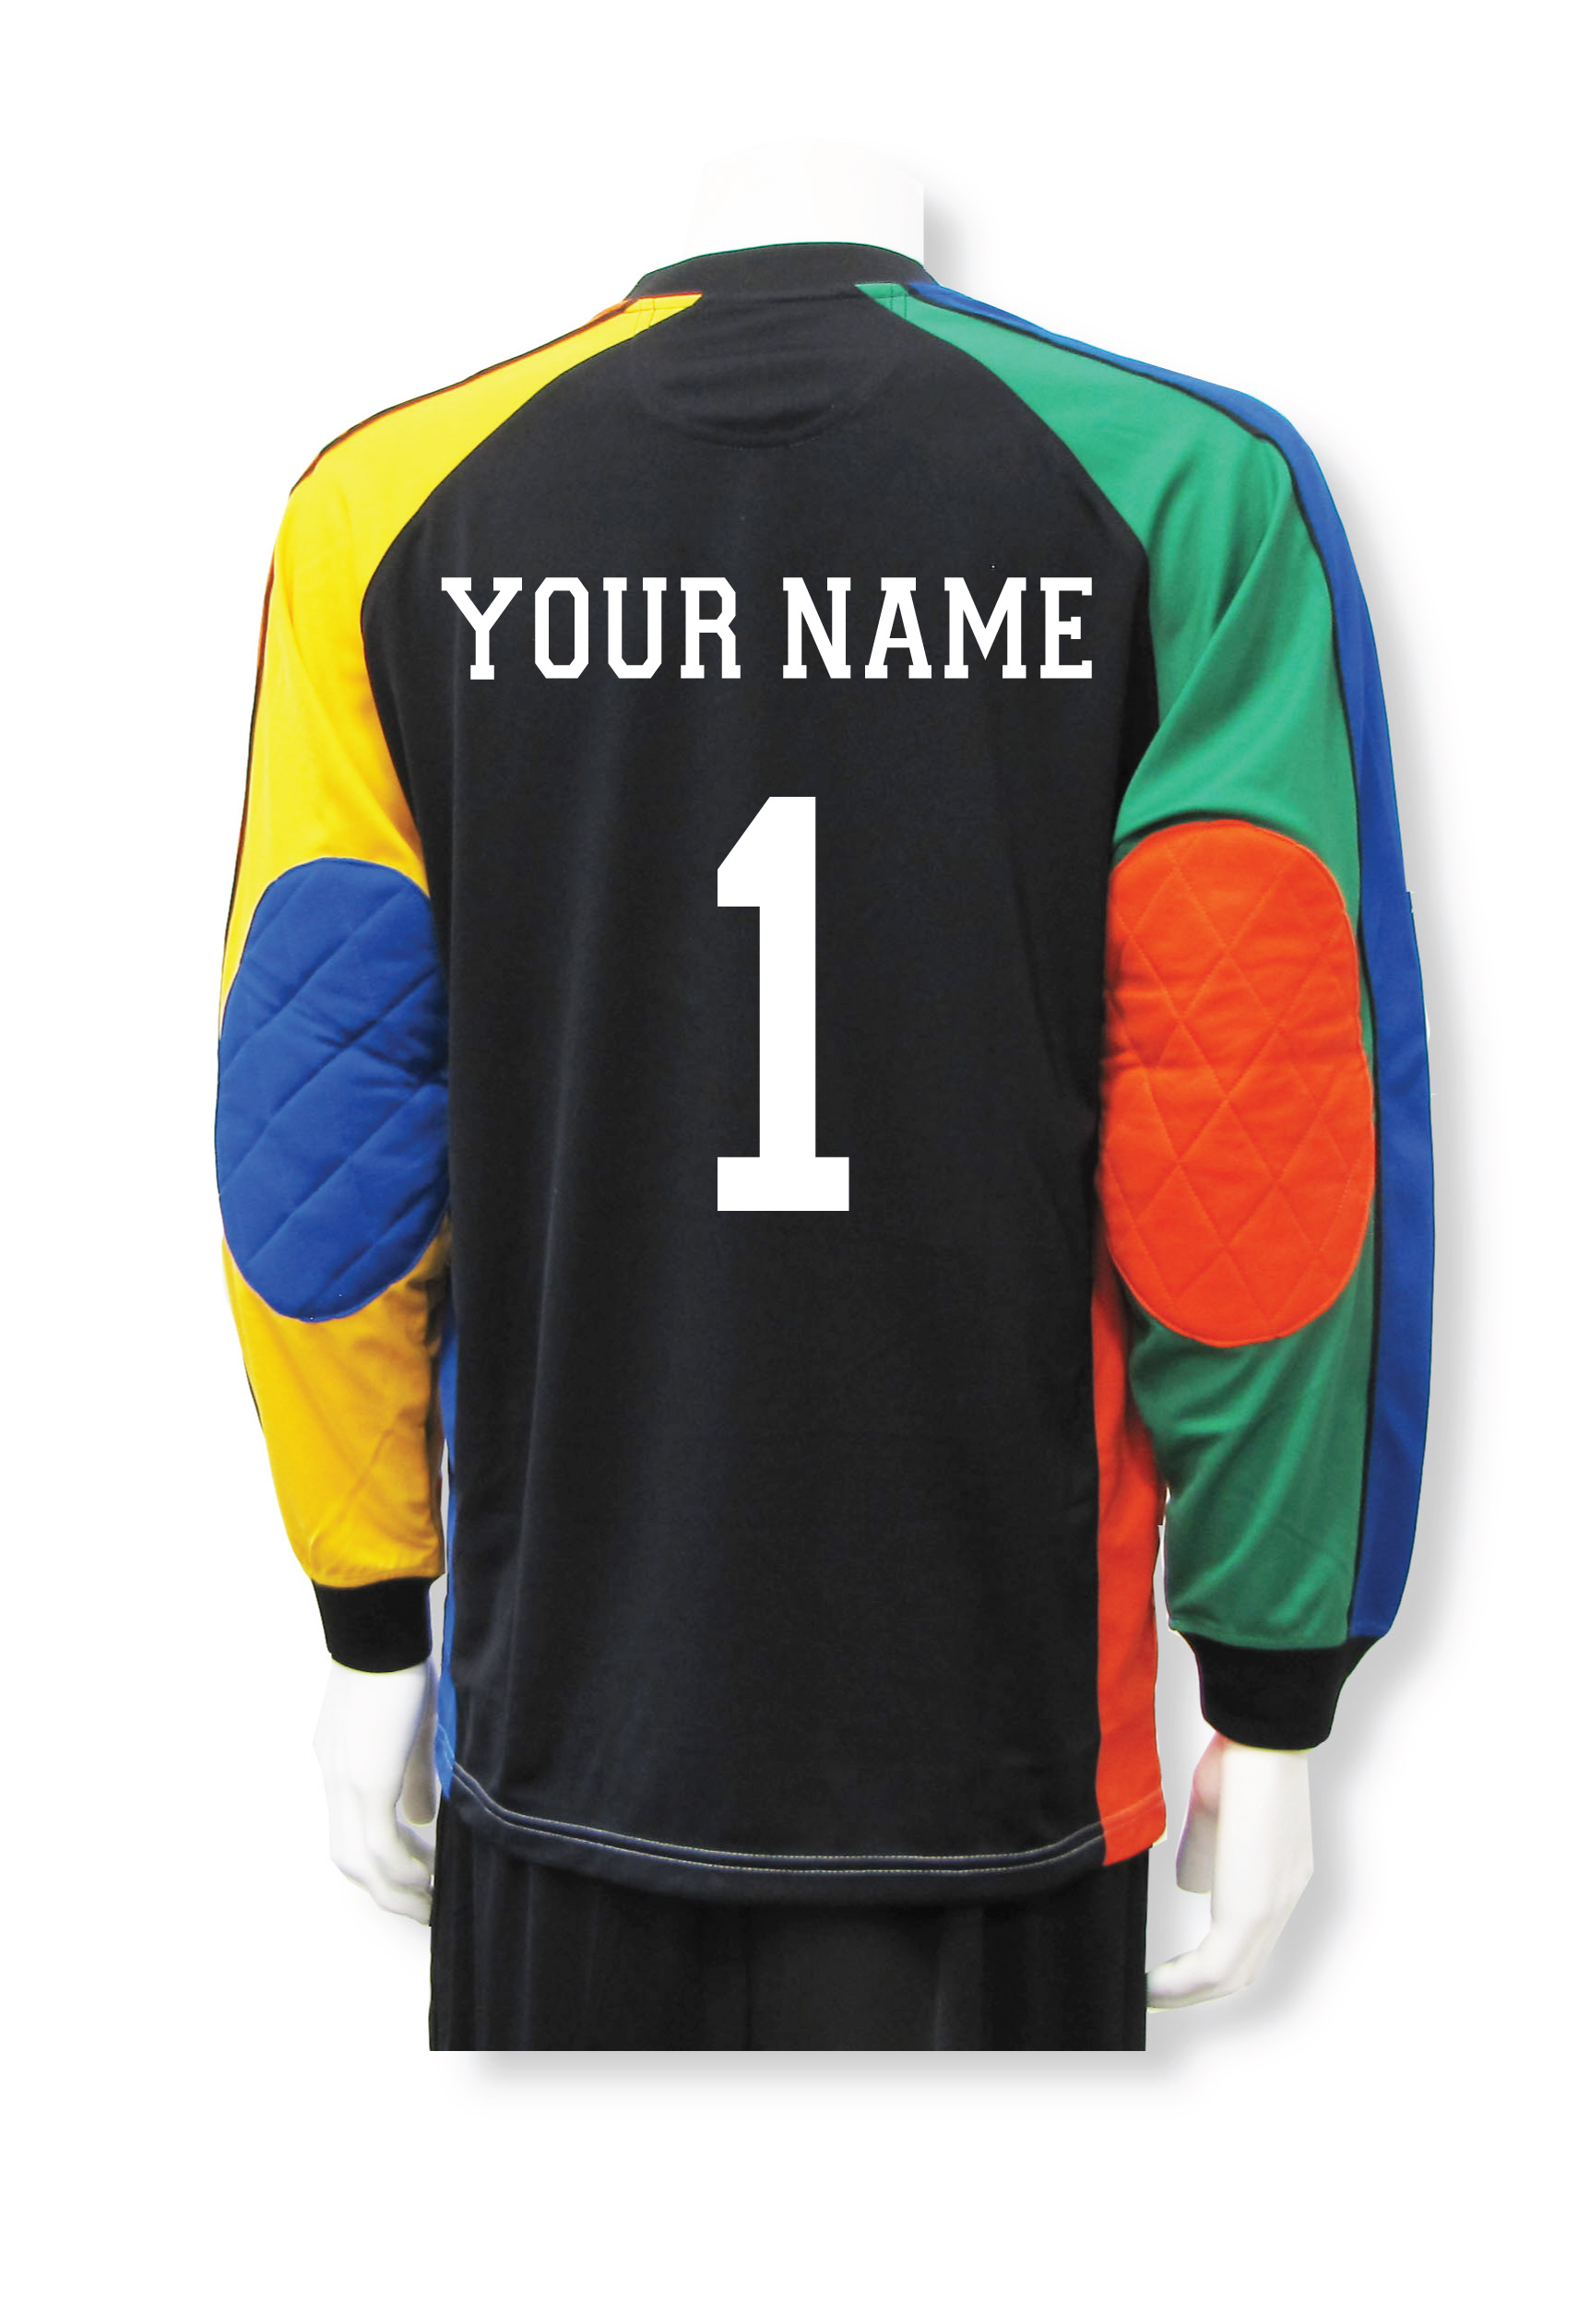 Gumball soccer goalie jersey with name and number on back by Code Four Athletics